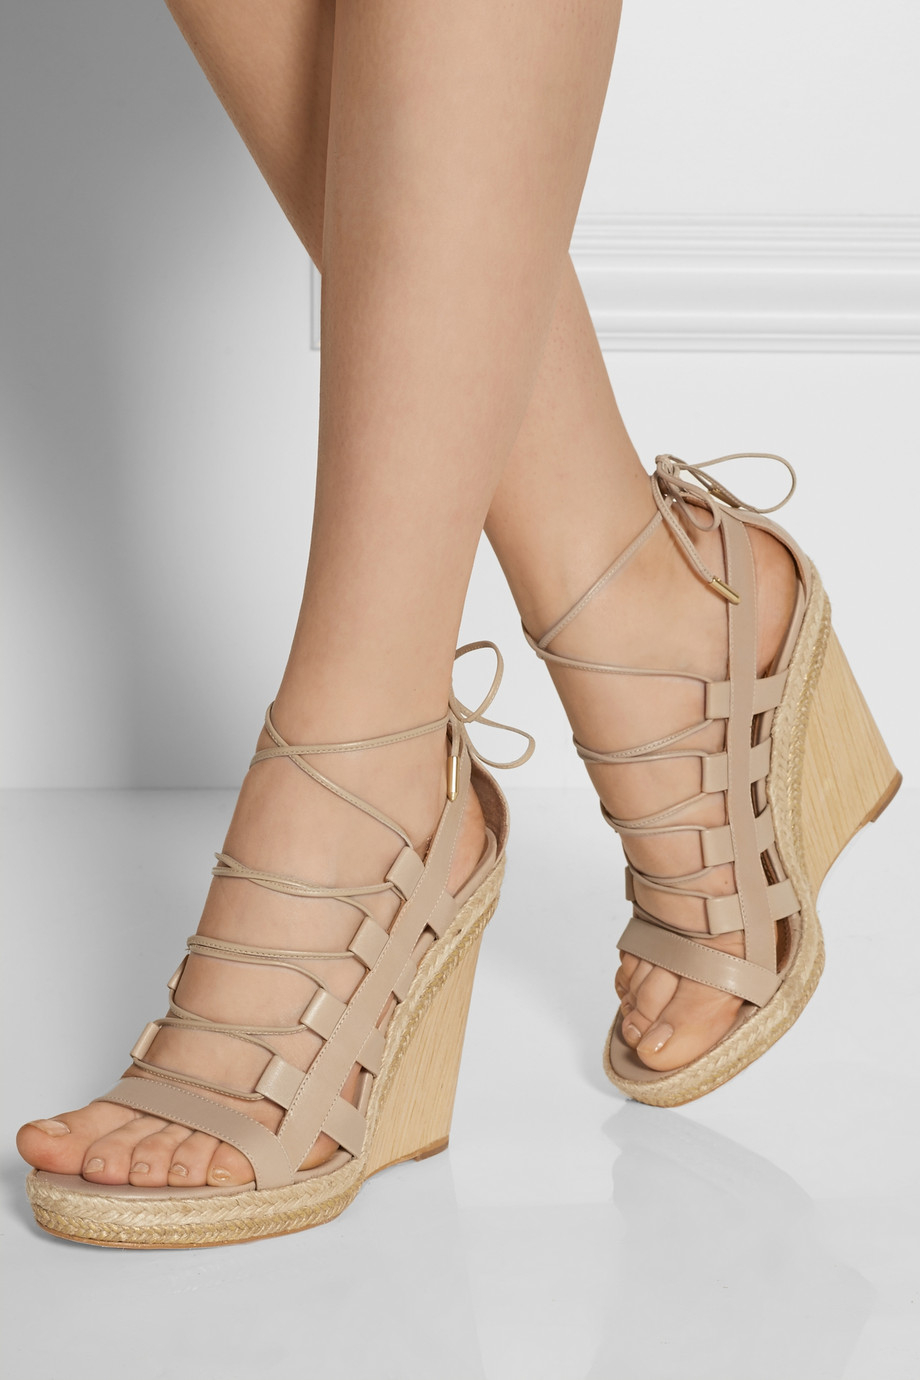 Lyst - Aquazzura Amazon Leather, Rope And Wood Wedge ...